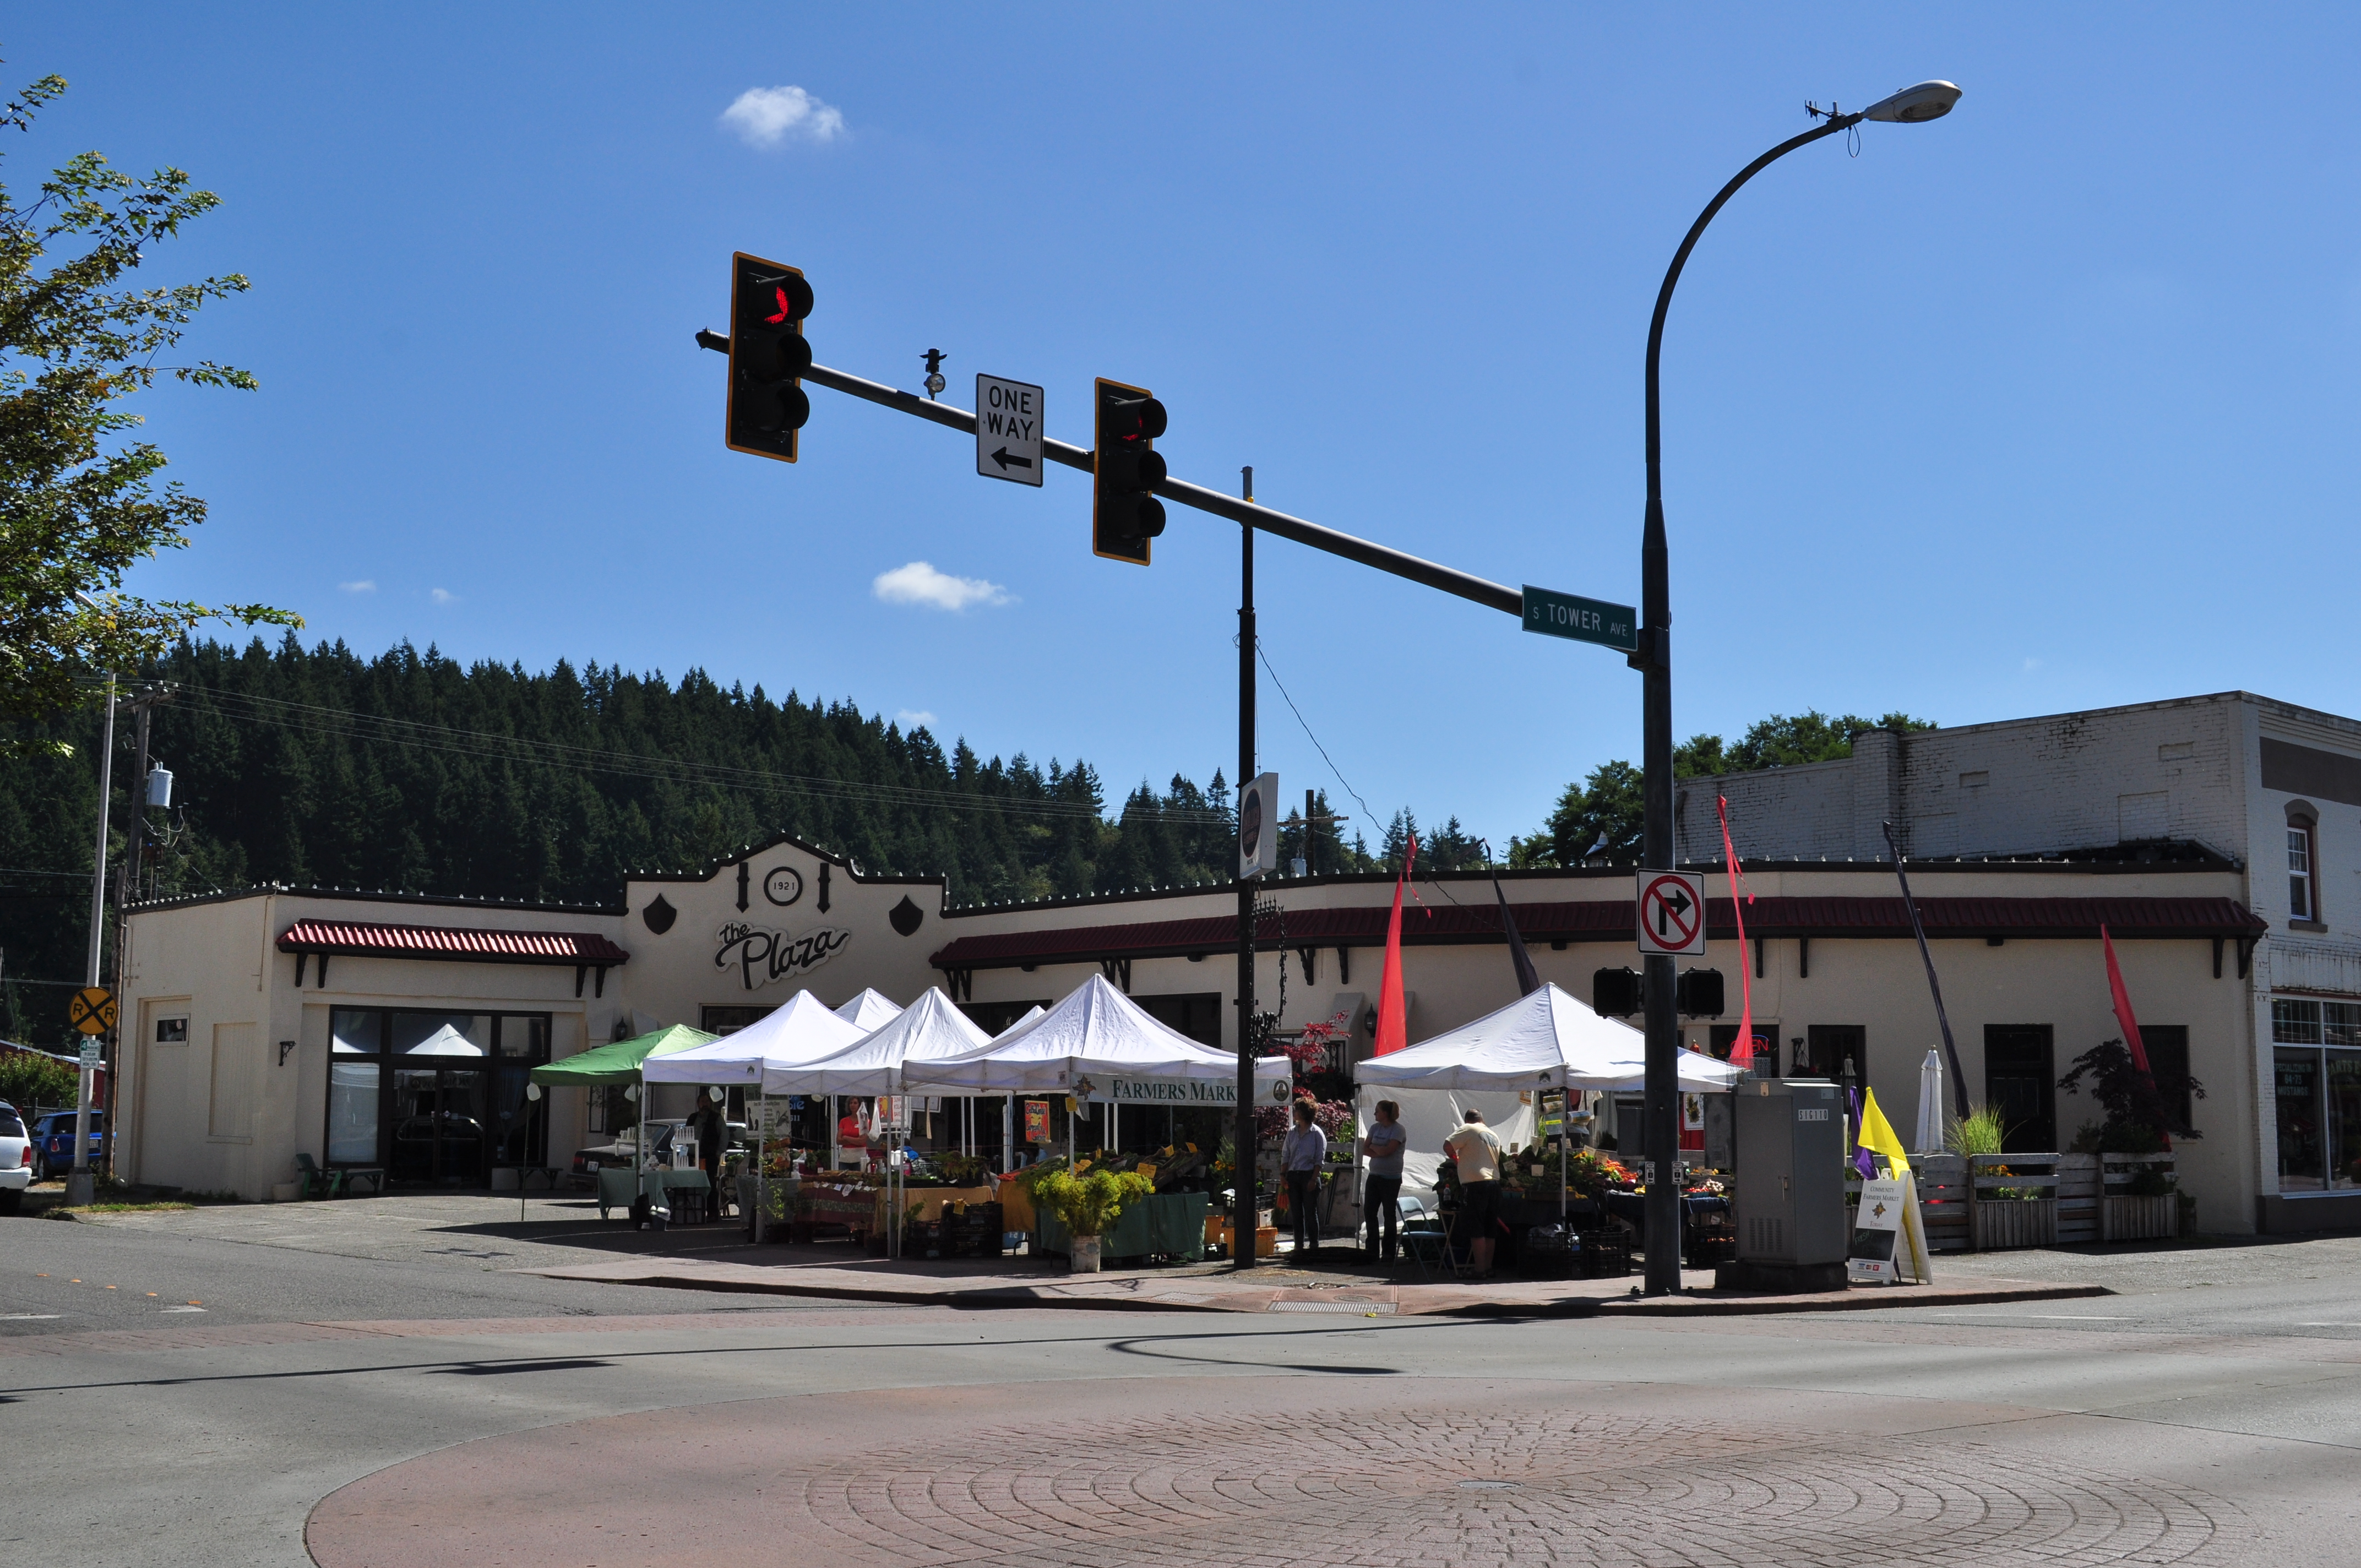 Centralia (WA) United States  City pictures : Description Centralia, WA farmers' market on Tower Avenue 01